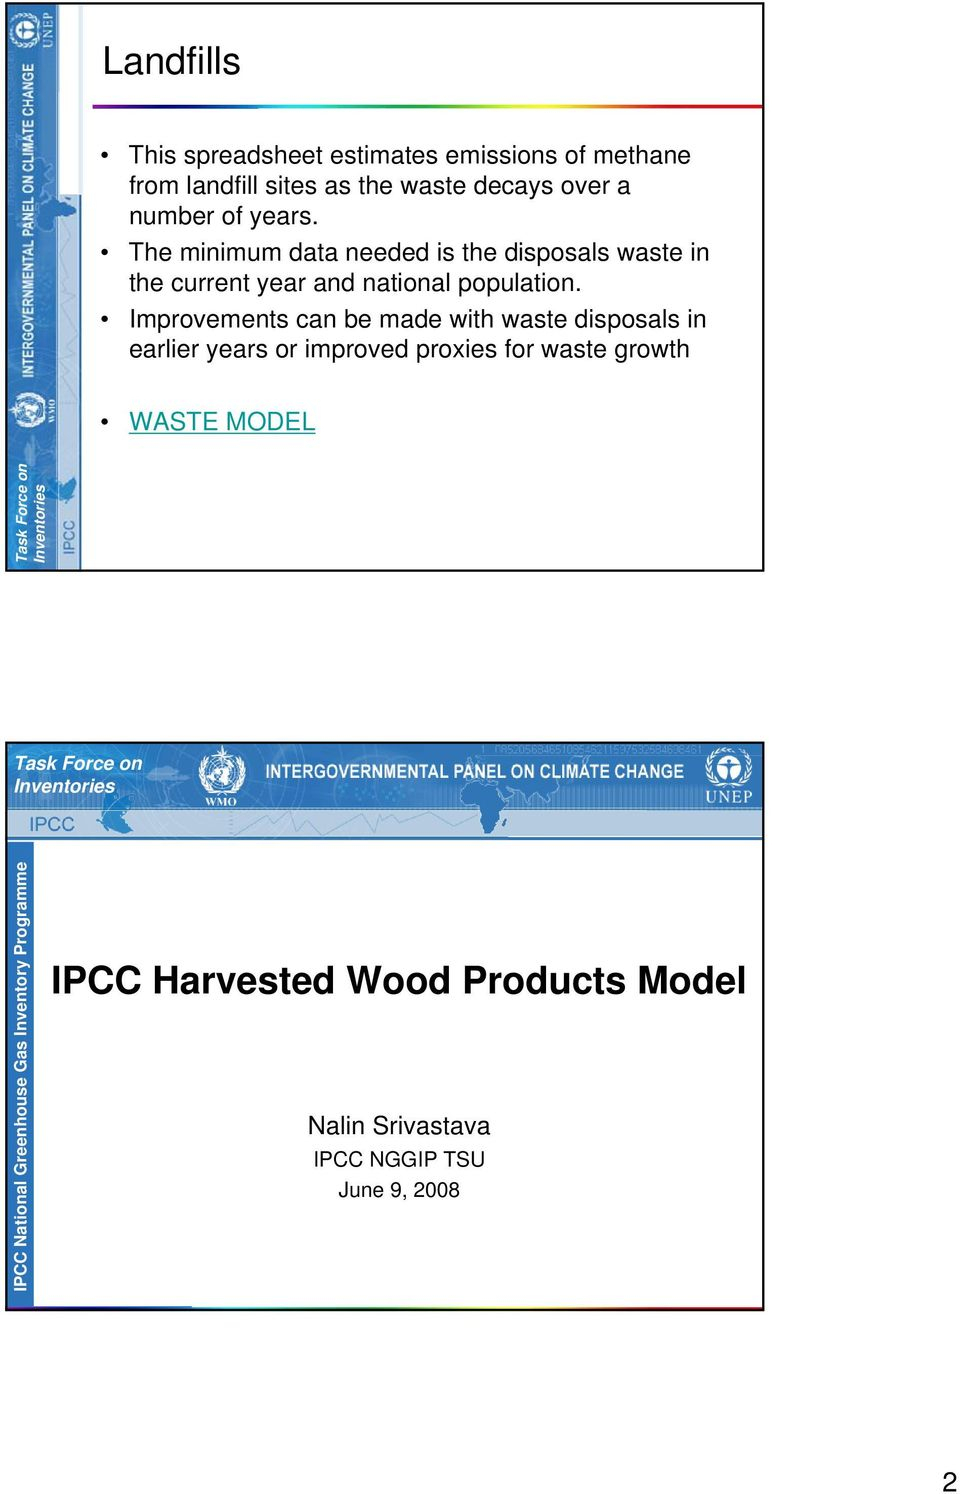 Waste Inventory Spreadsheet Within Inventories Intergovernmental Panel On Climate Change. Ipcc Emission